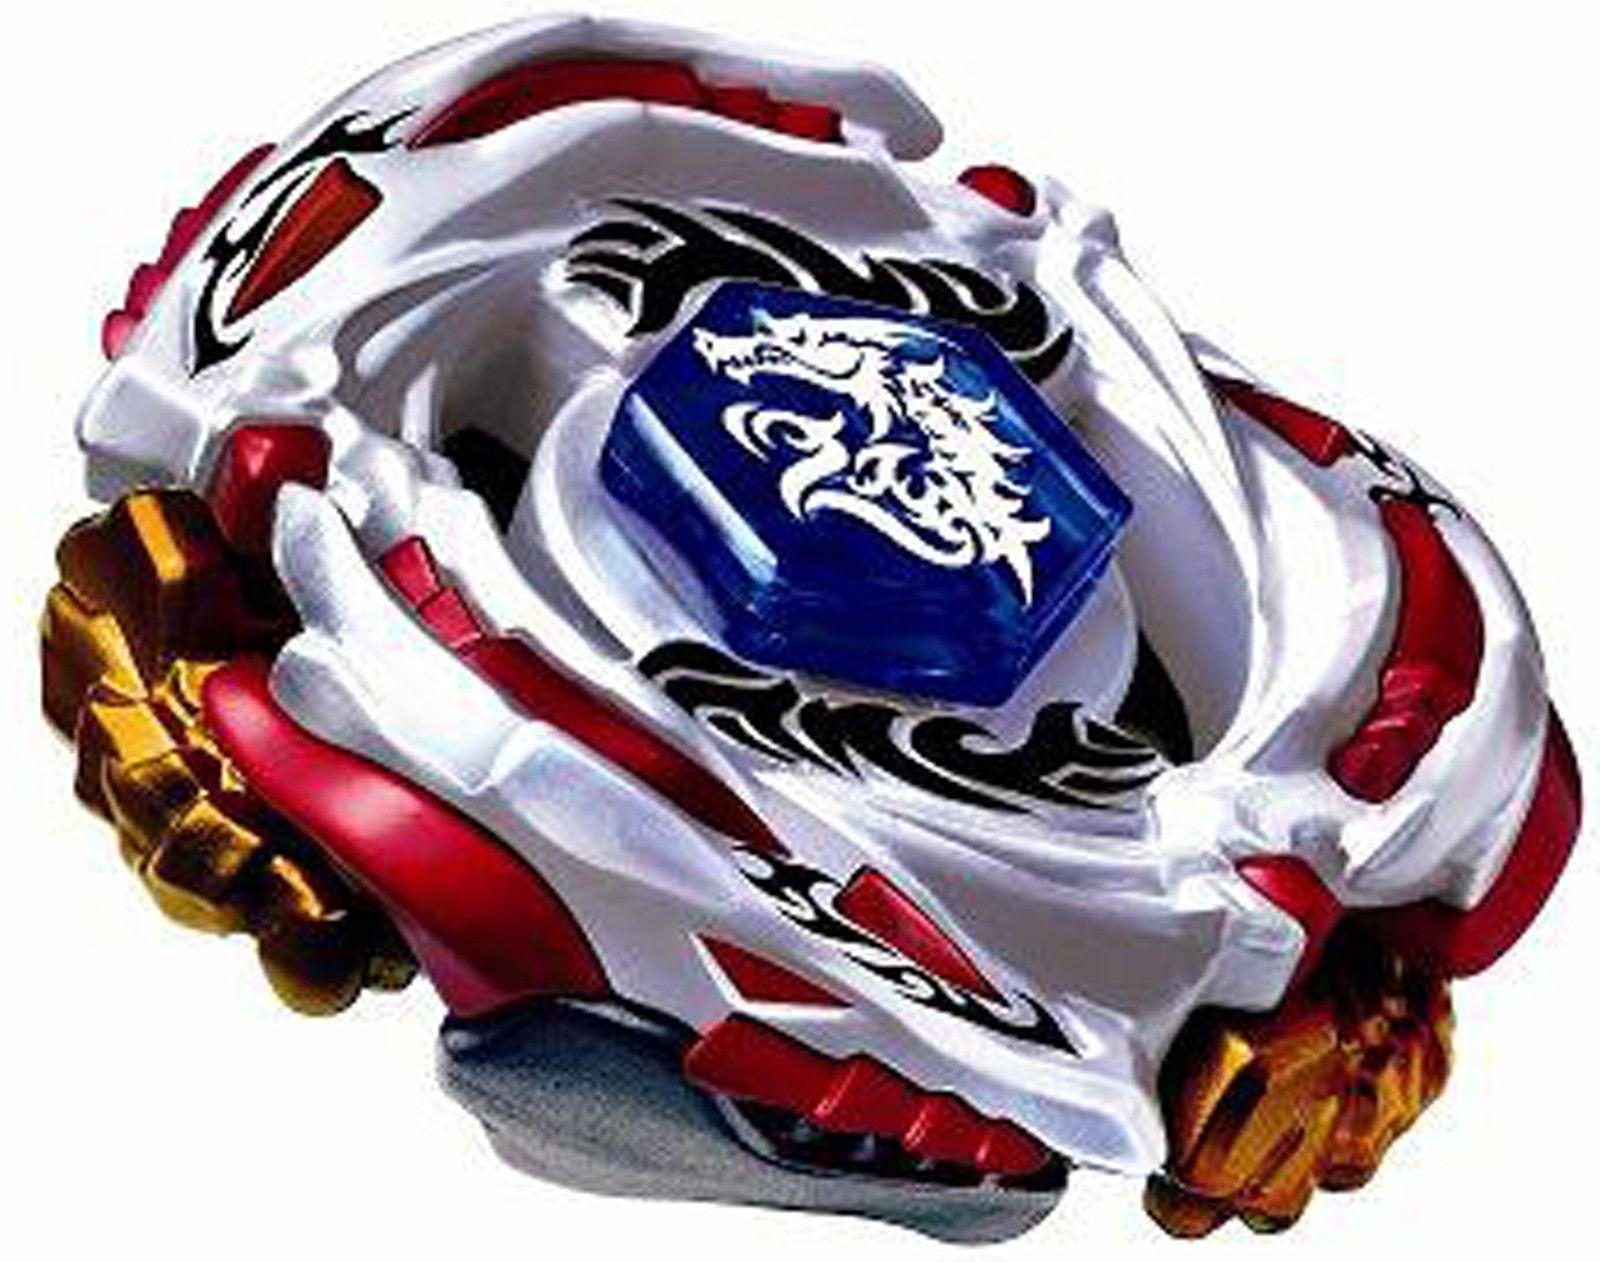 Mnotht Toy Beyblade Meteo L -Drago Lw105lf Metal Masters 4d Beyblade Bb -88 +Launcher For Children Gift Classic Toys Spinning Top